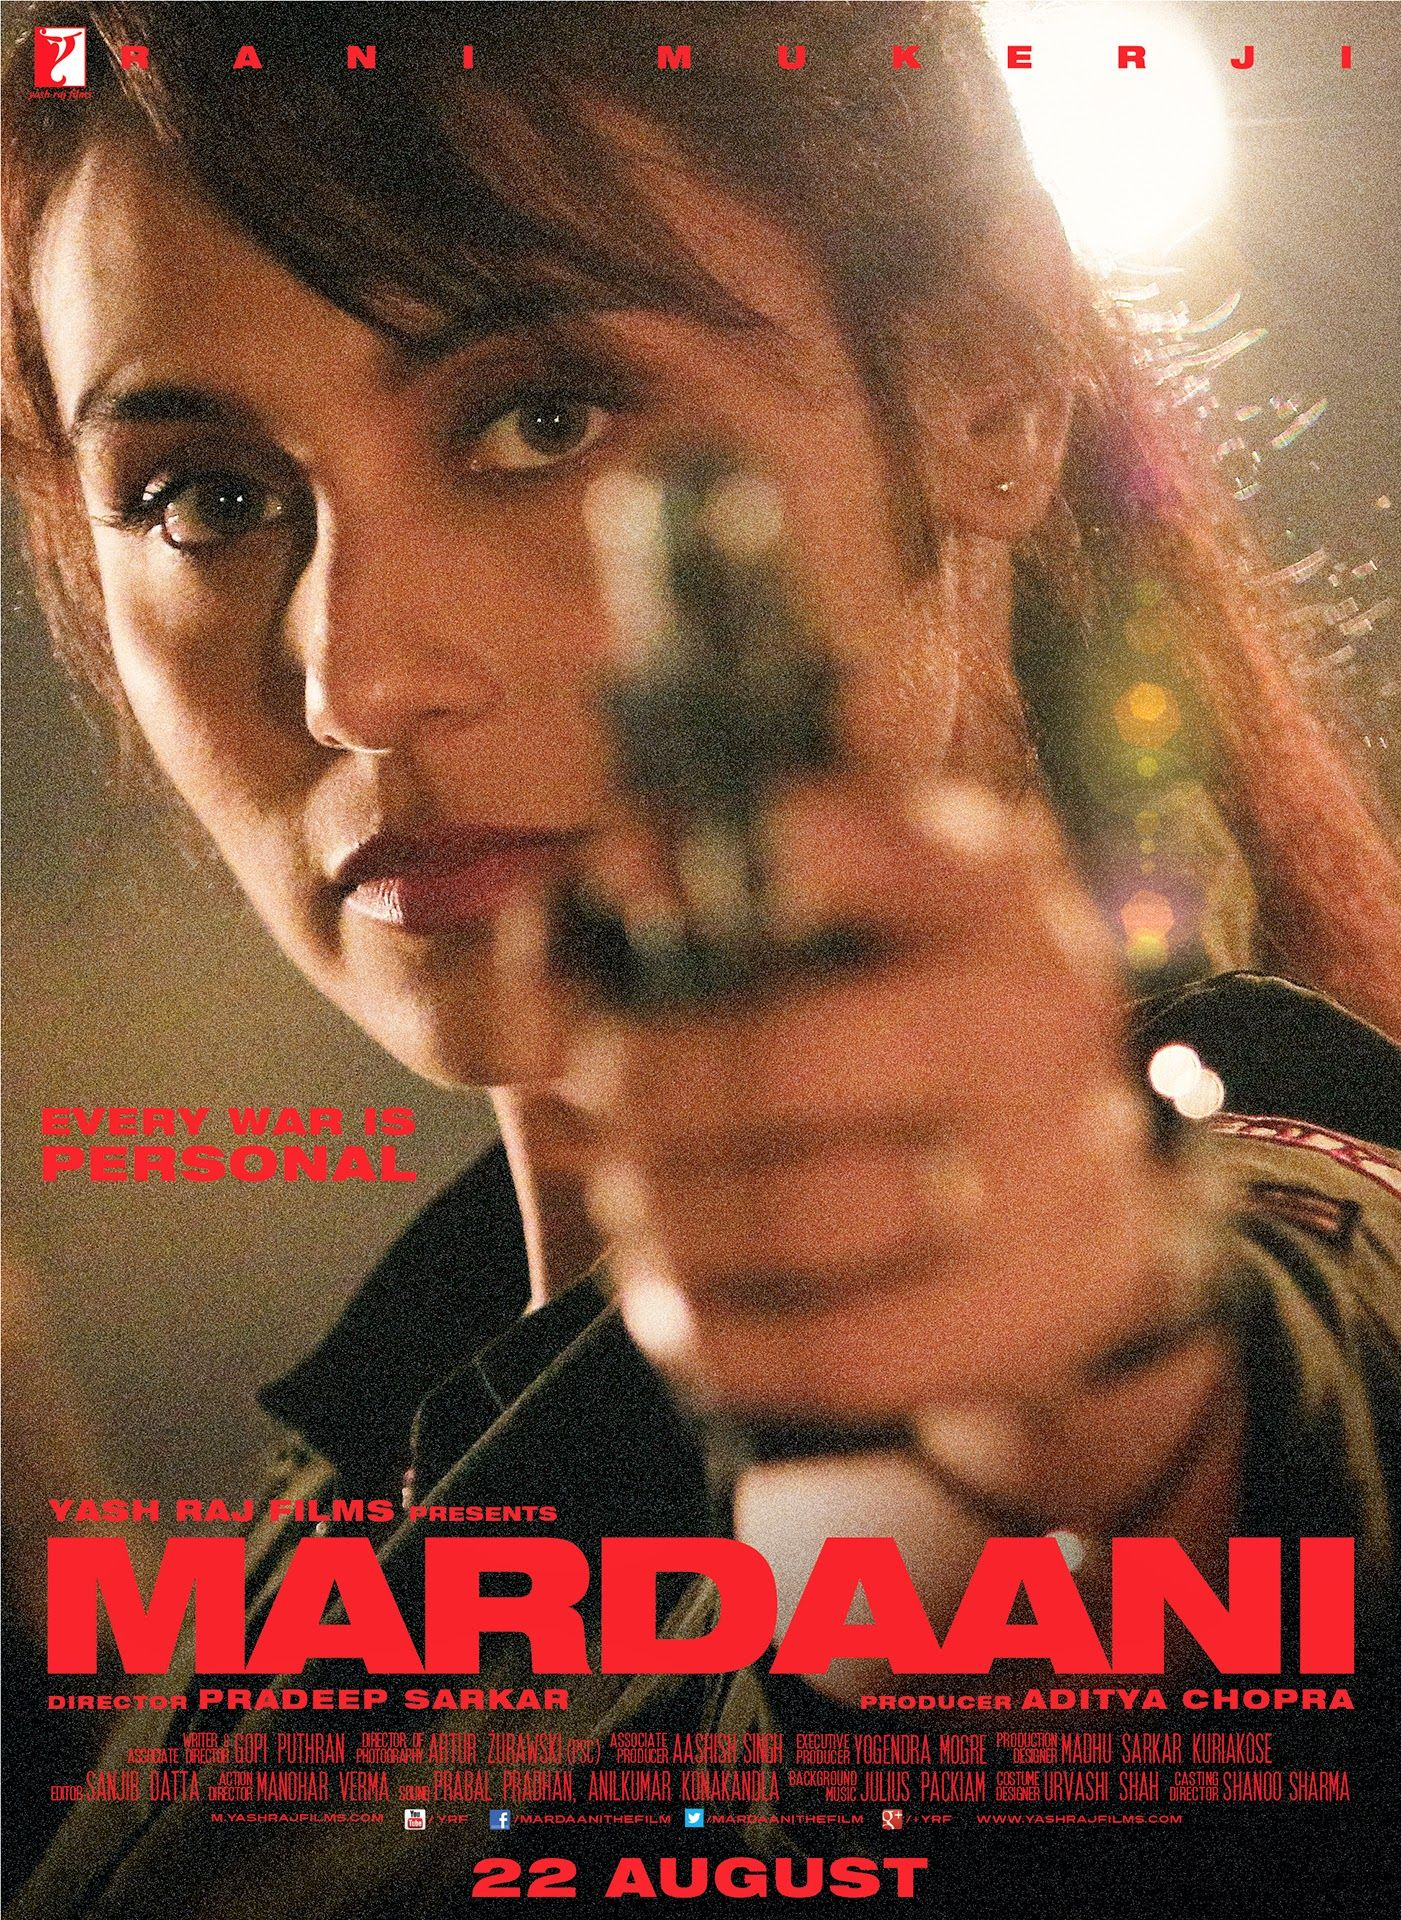 As Police Officer In Mardaani Full Movies Online Free Free Movies Online Movies Online